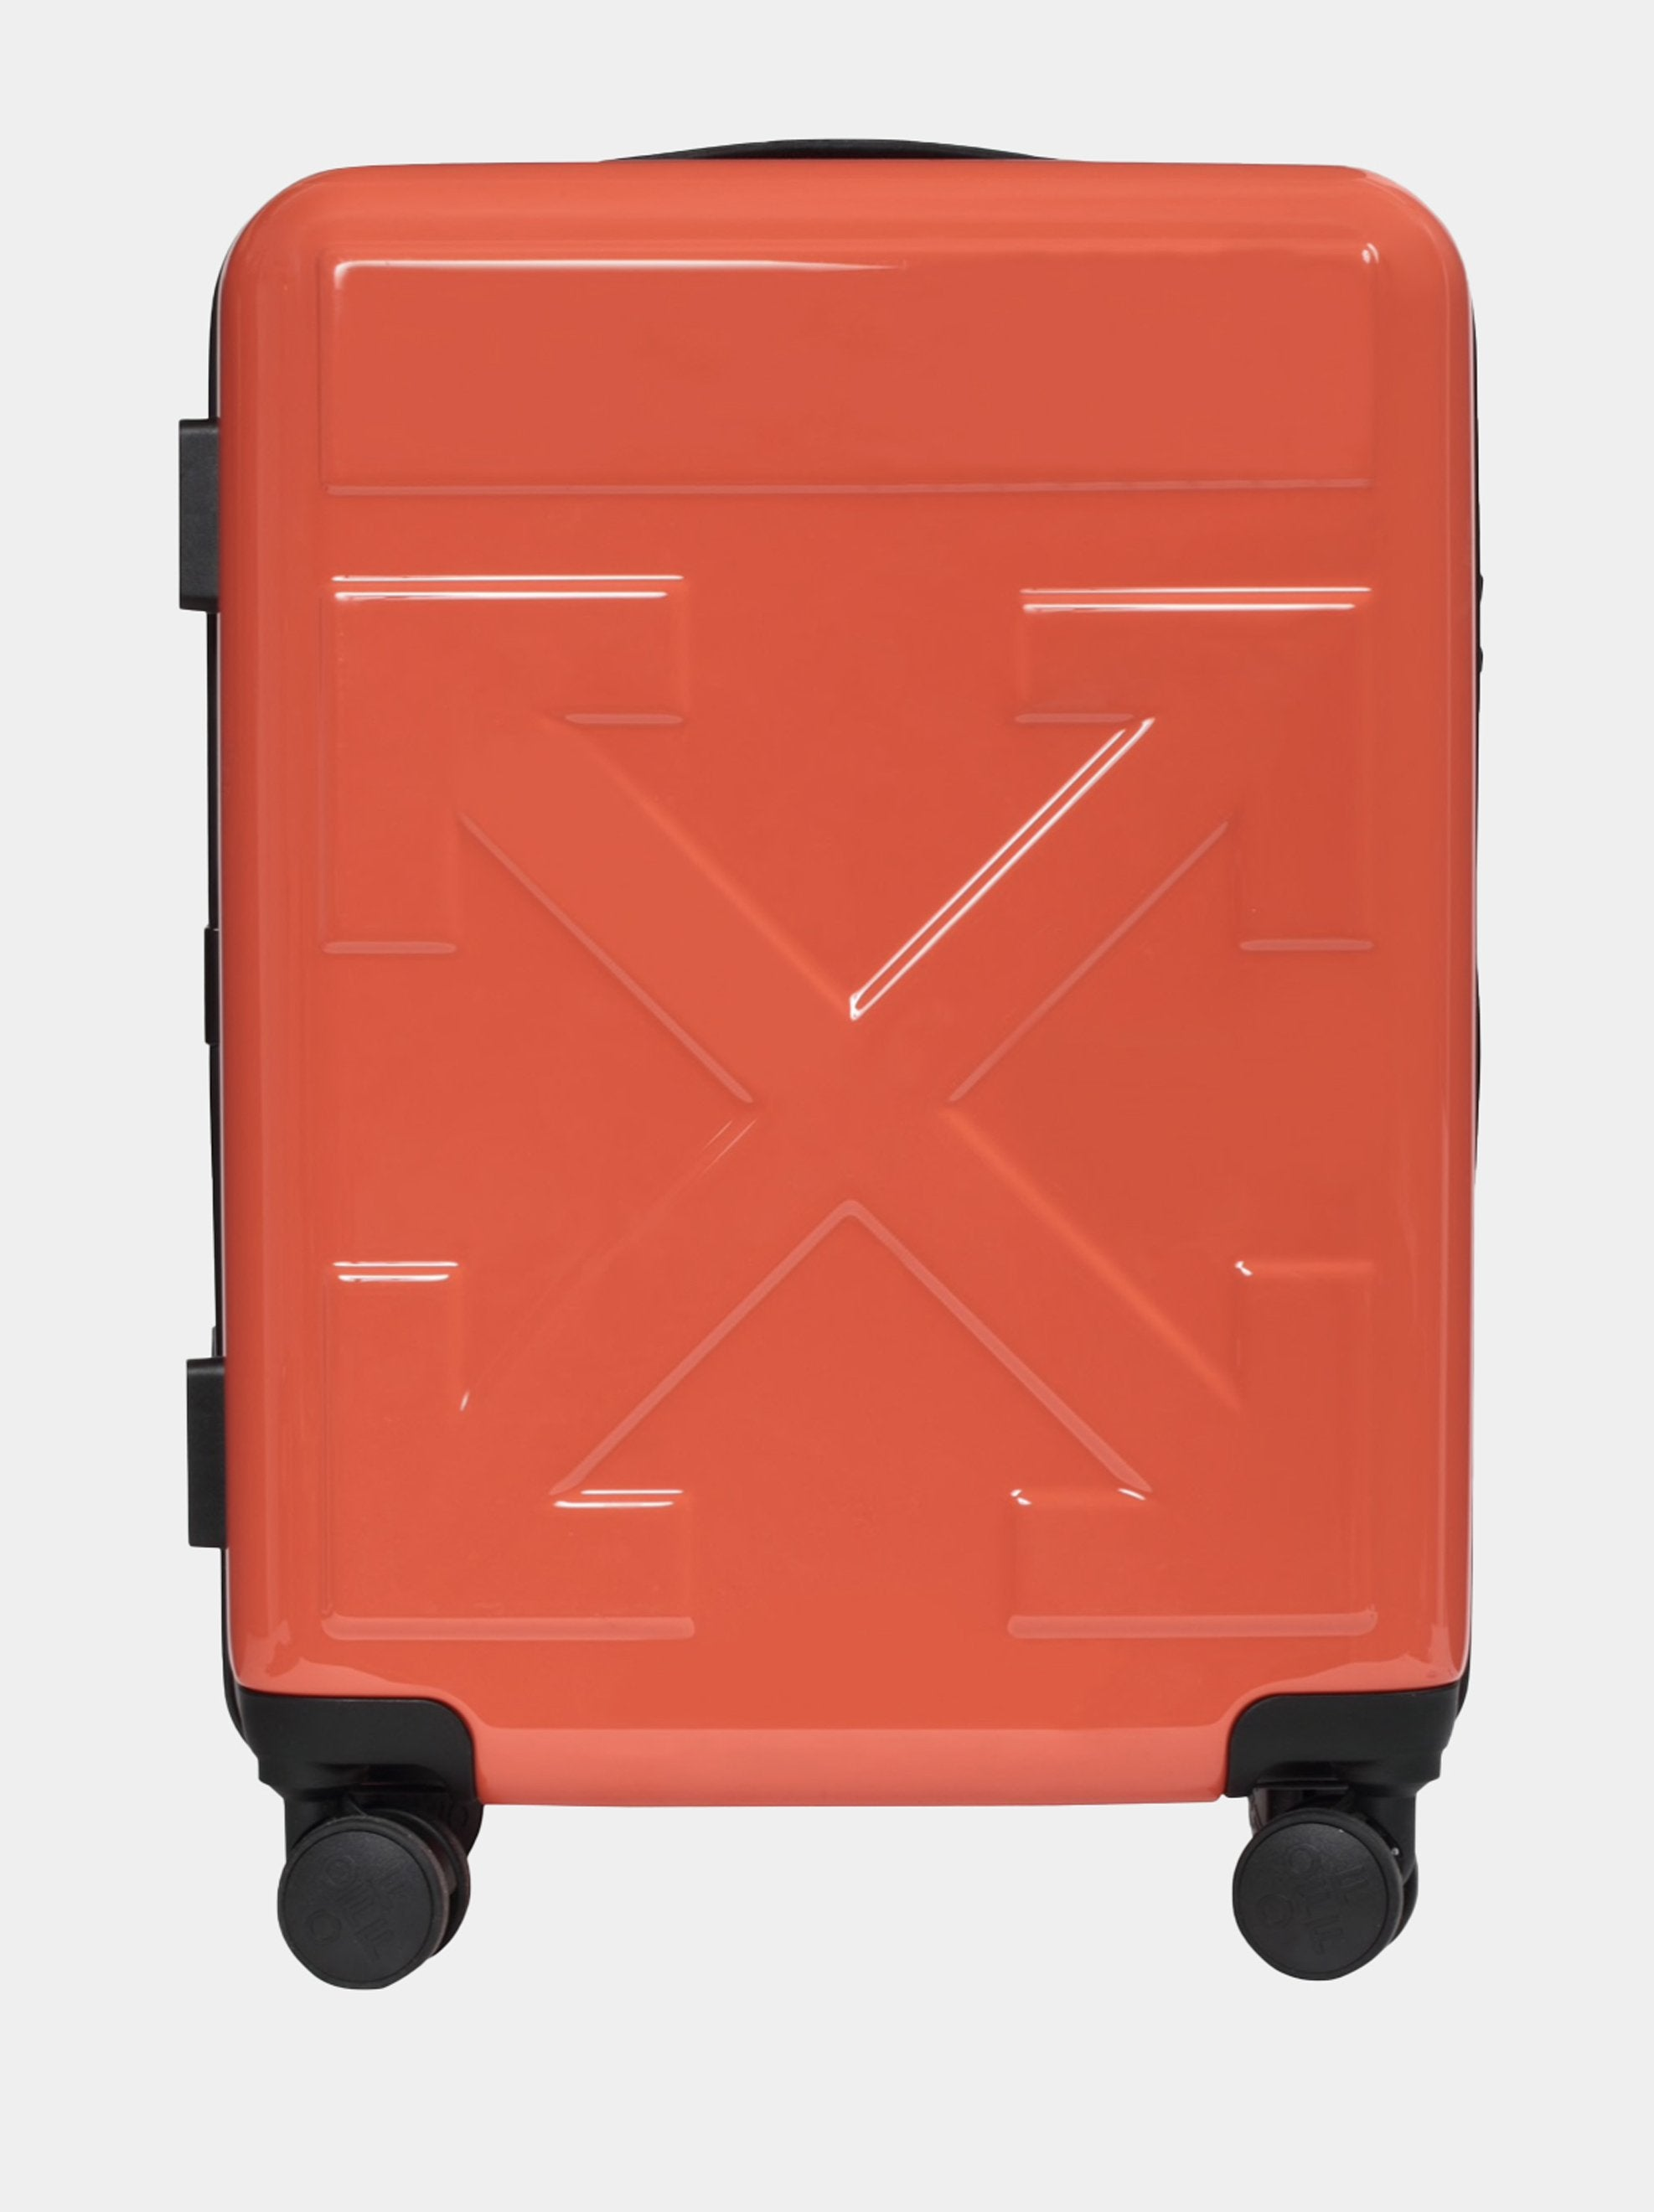 Red Arrow Trolley Luggage 1